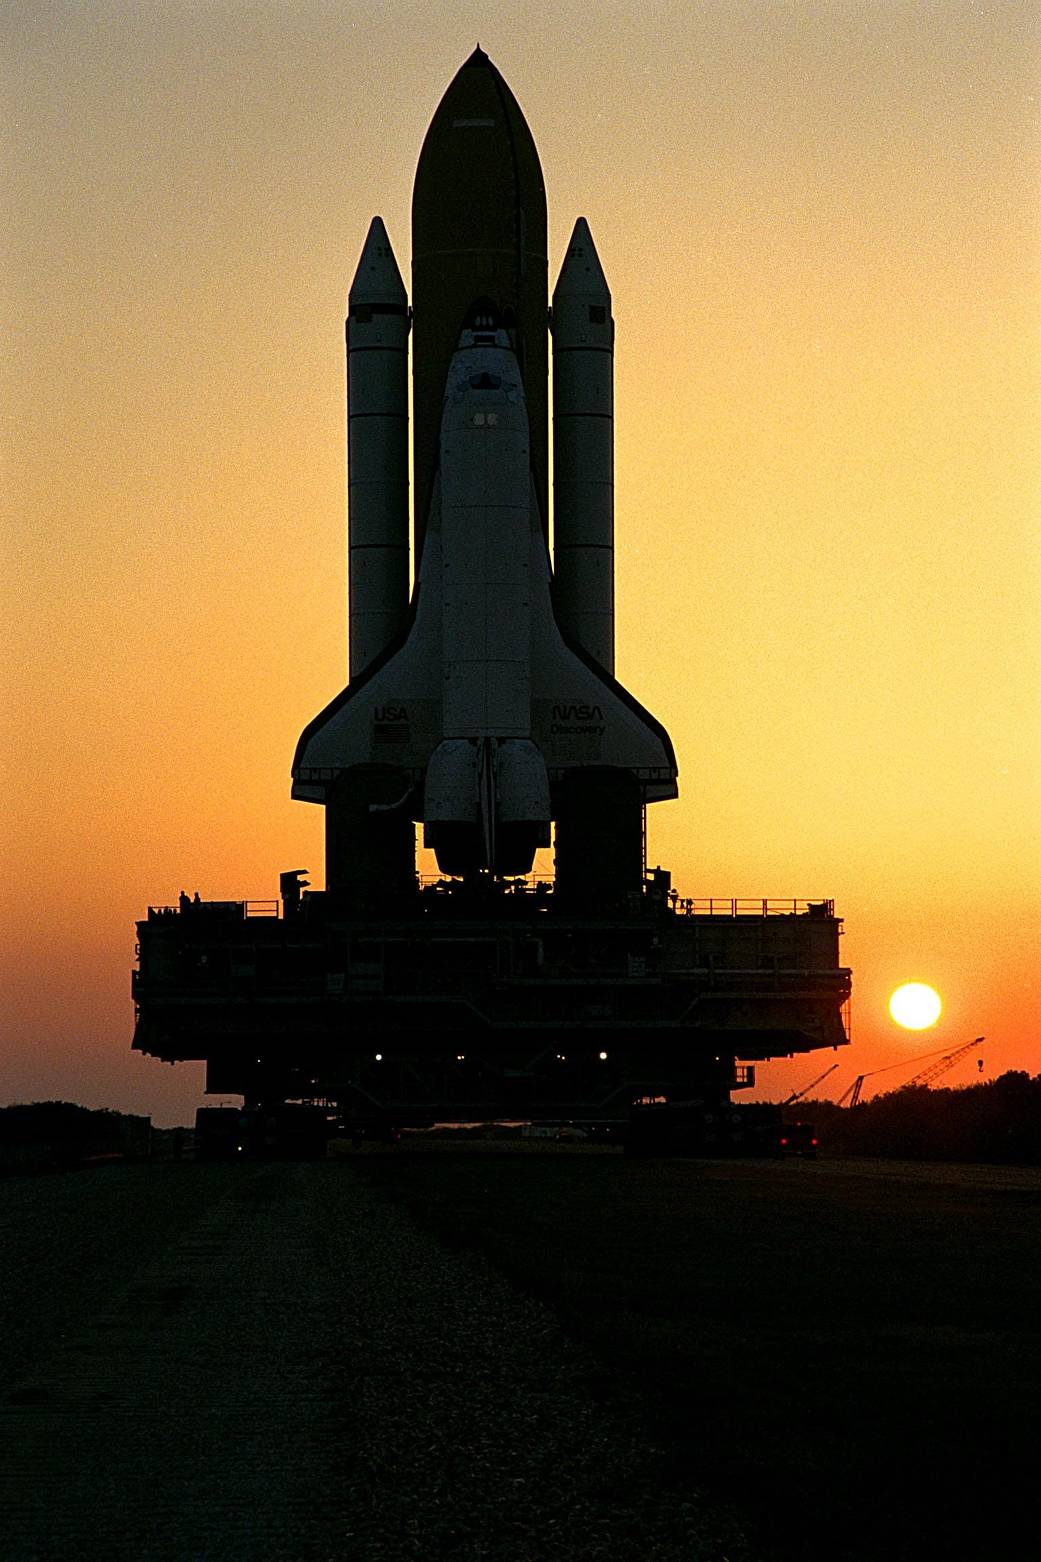 This week in 1998, the shuttle Discovery and STS-91 launched from Kennedy Space Center on the final Shuttle-Mir docking mission.